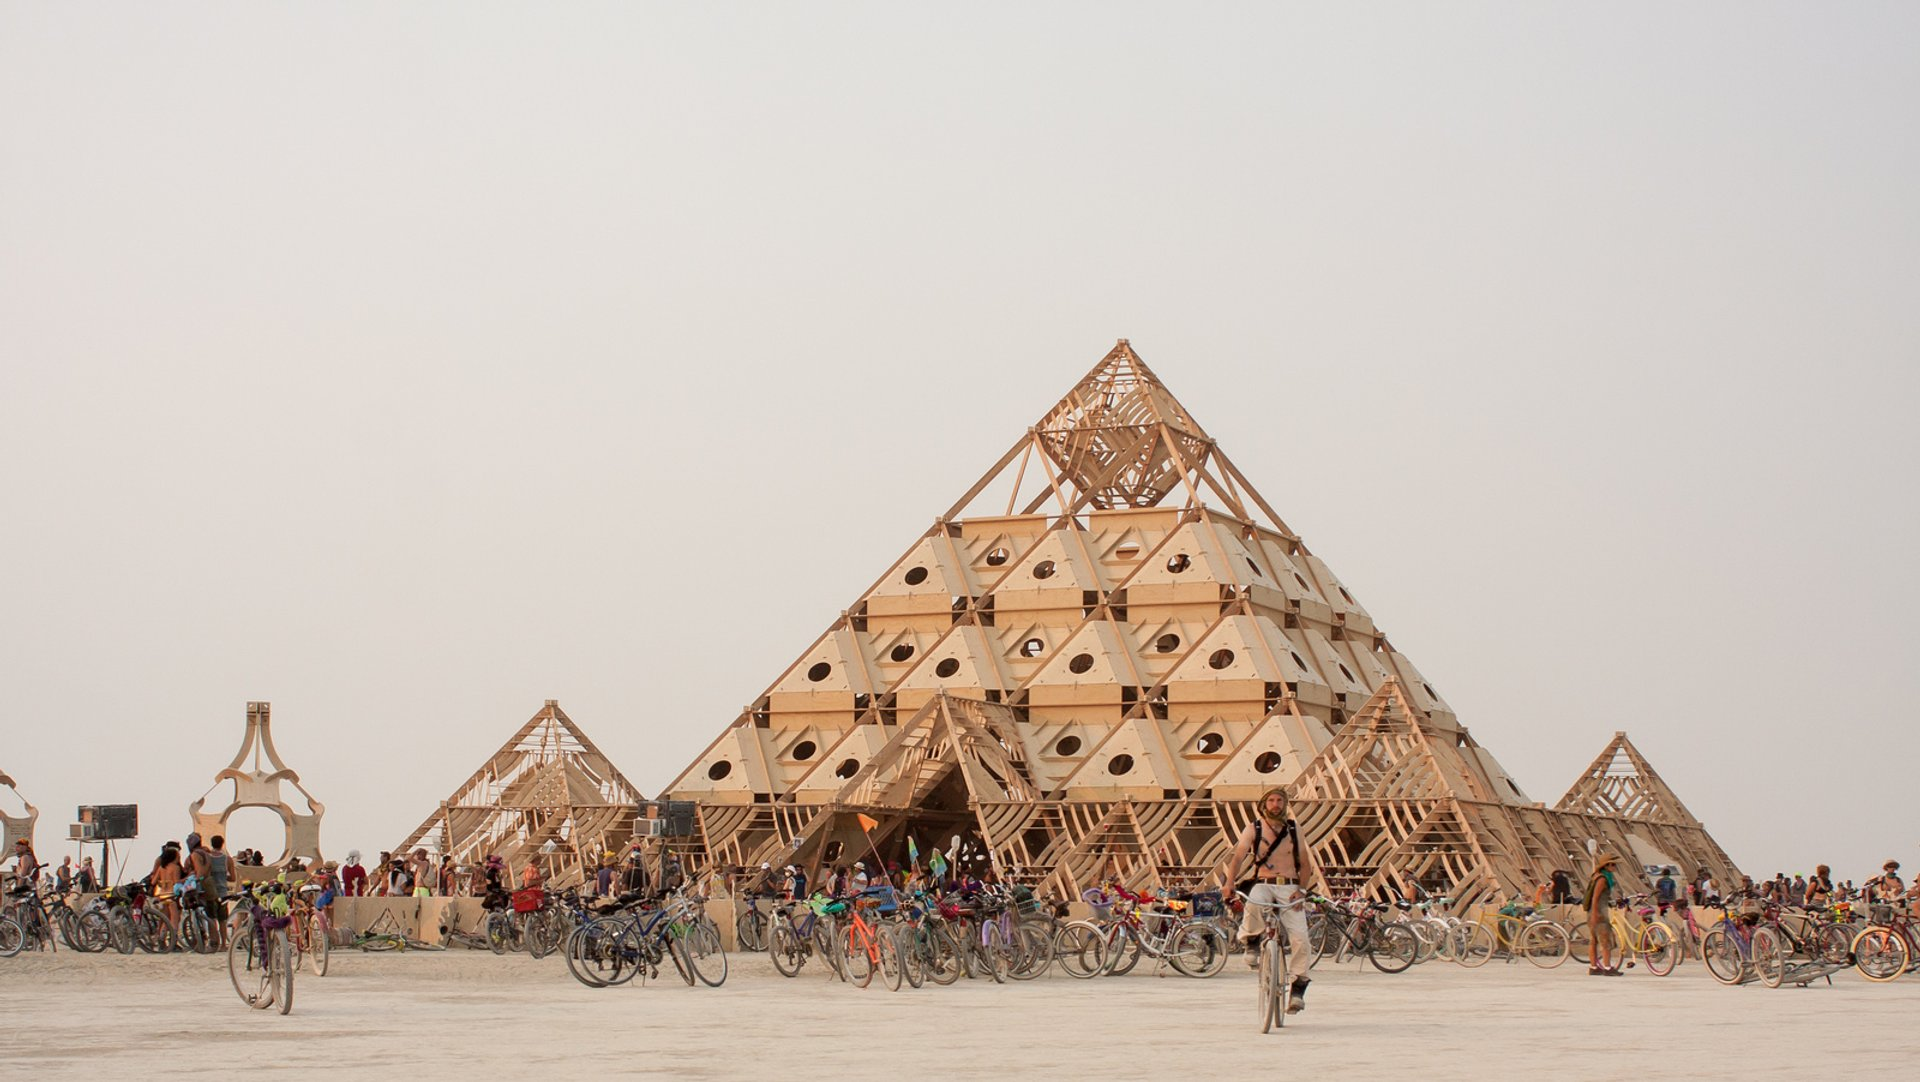 Best time to see Burning Man 2019